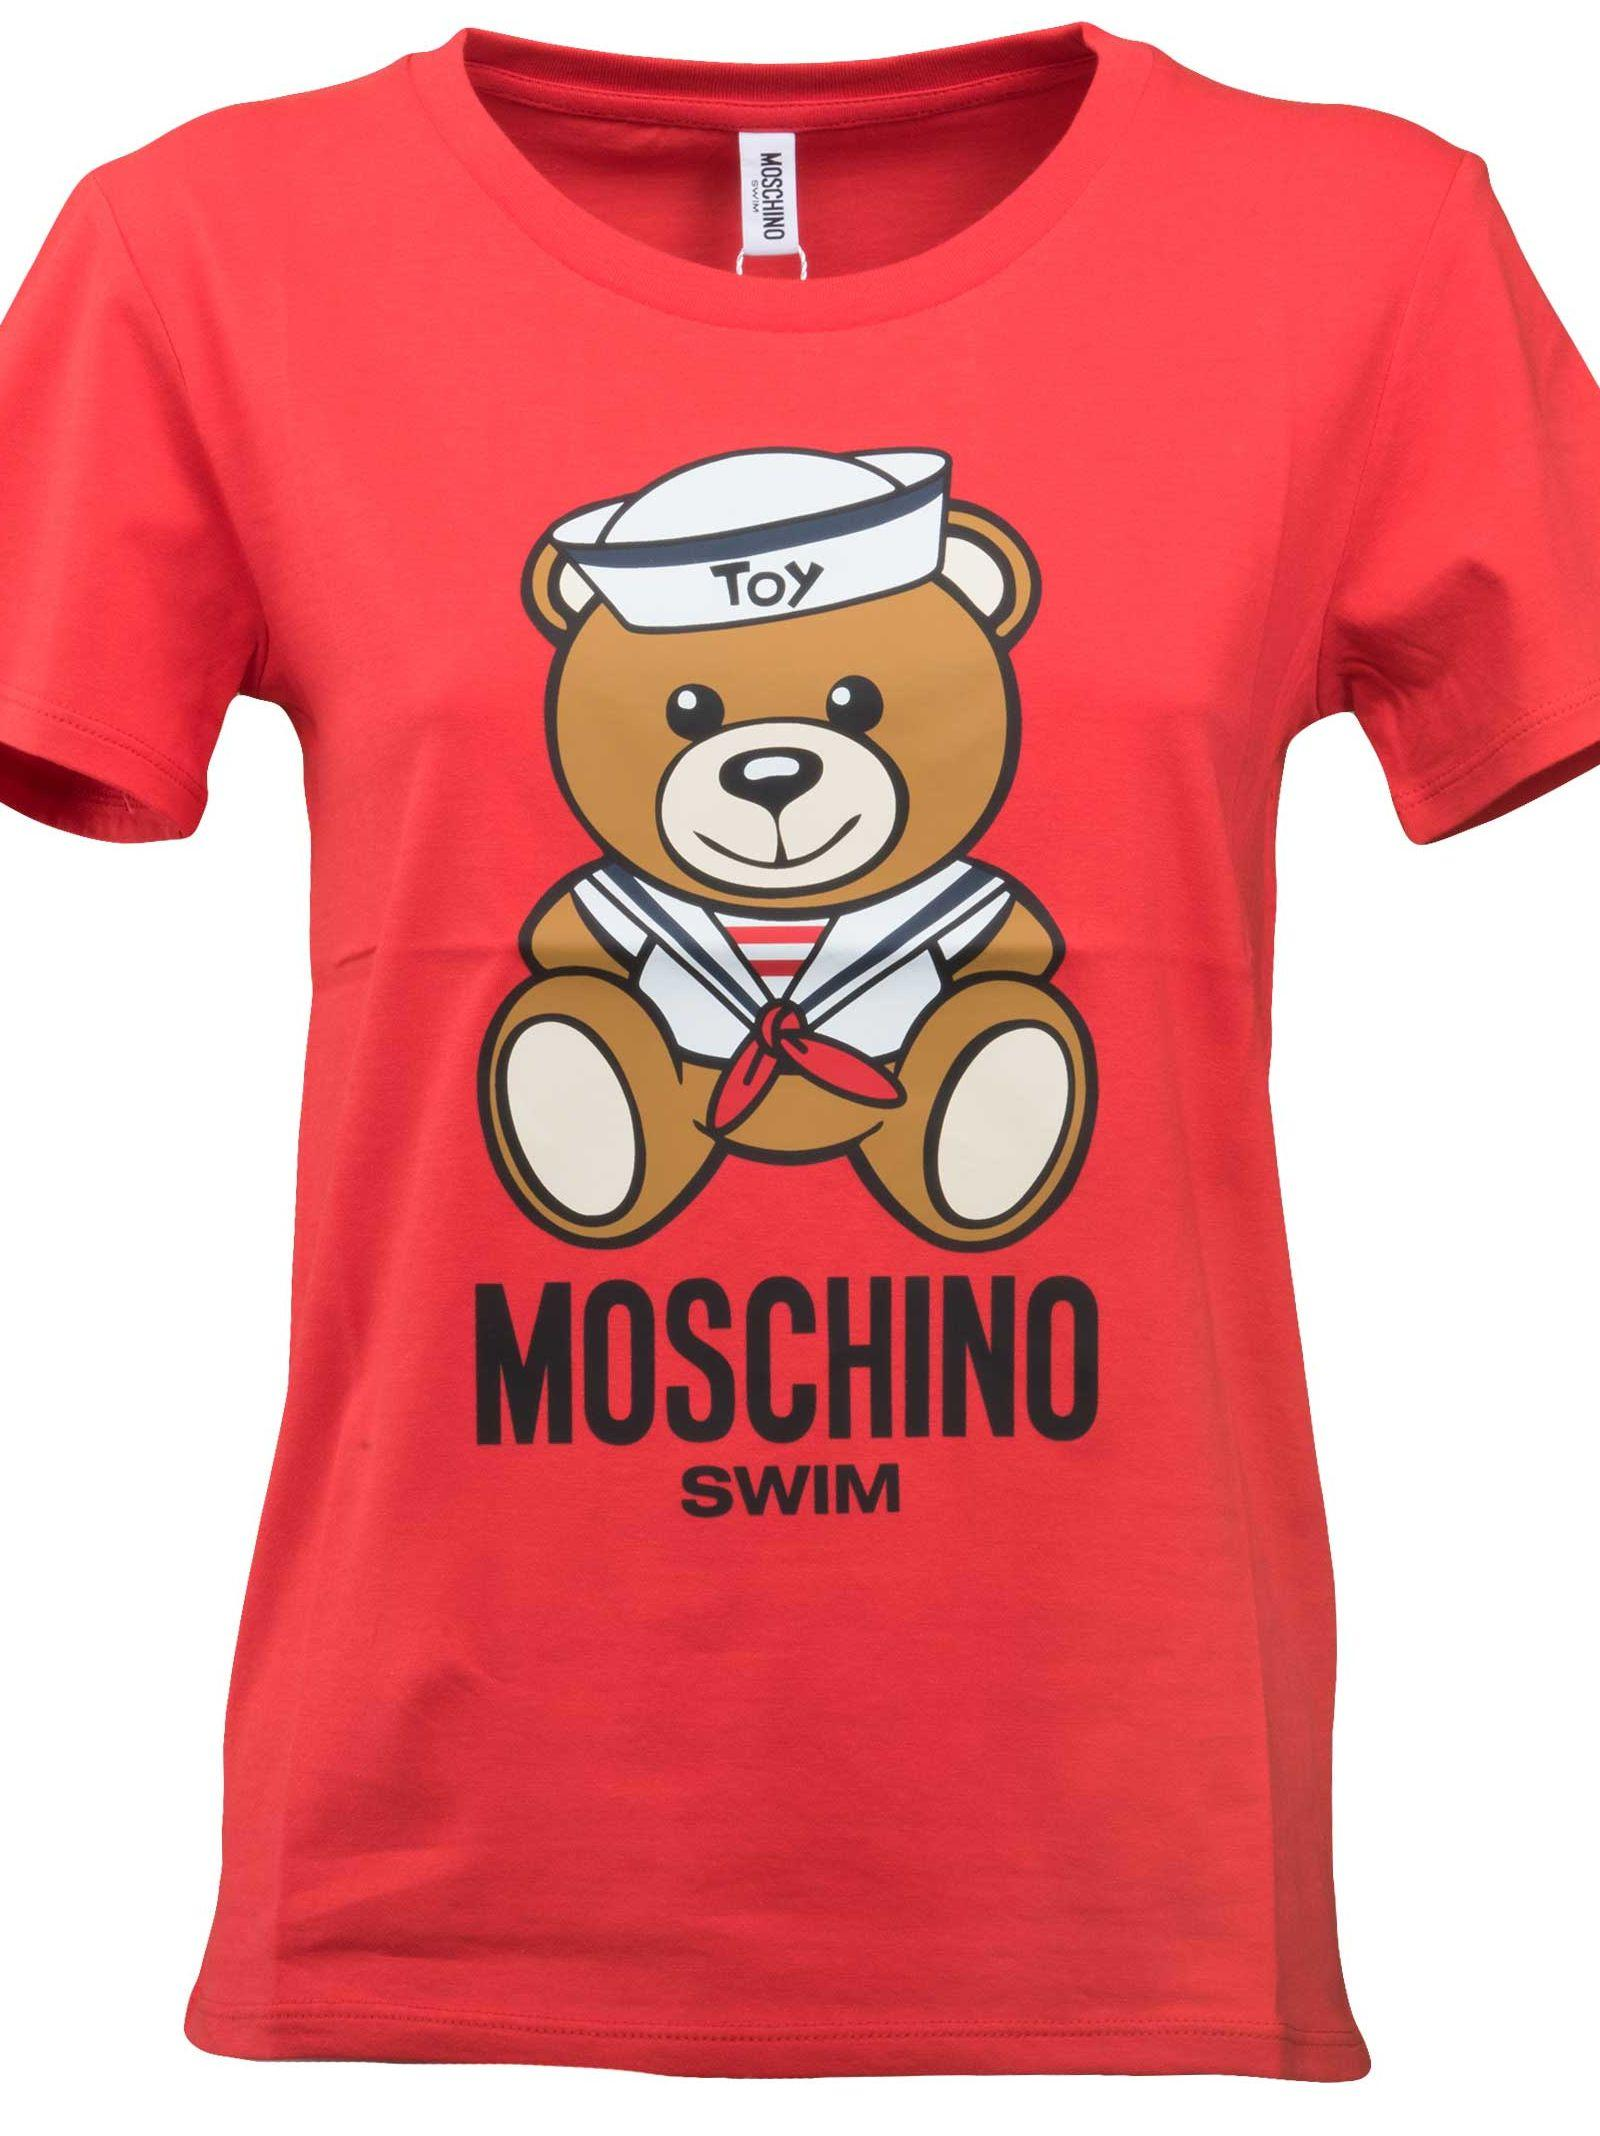 Moschino Sailor Teddy T-shirt In Red